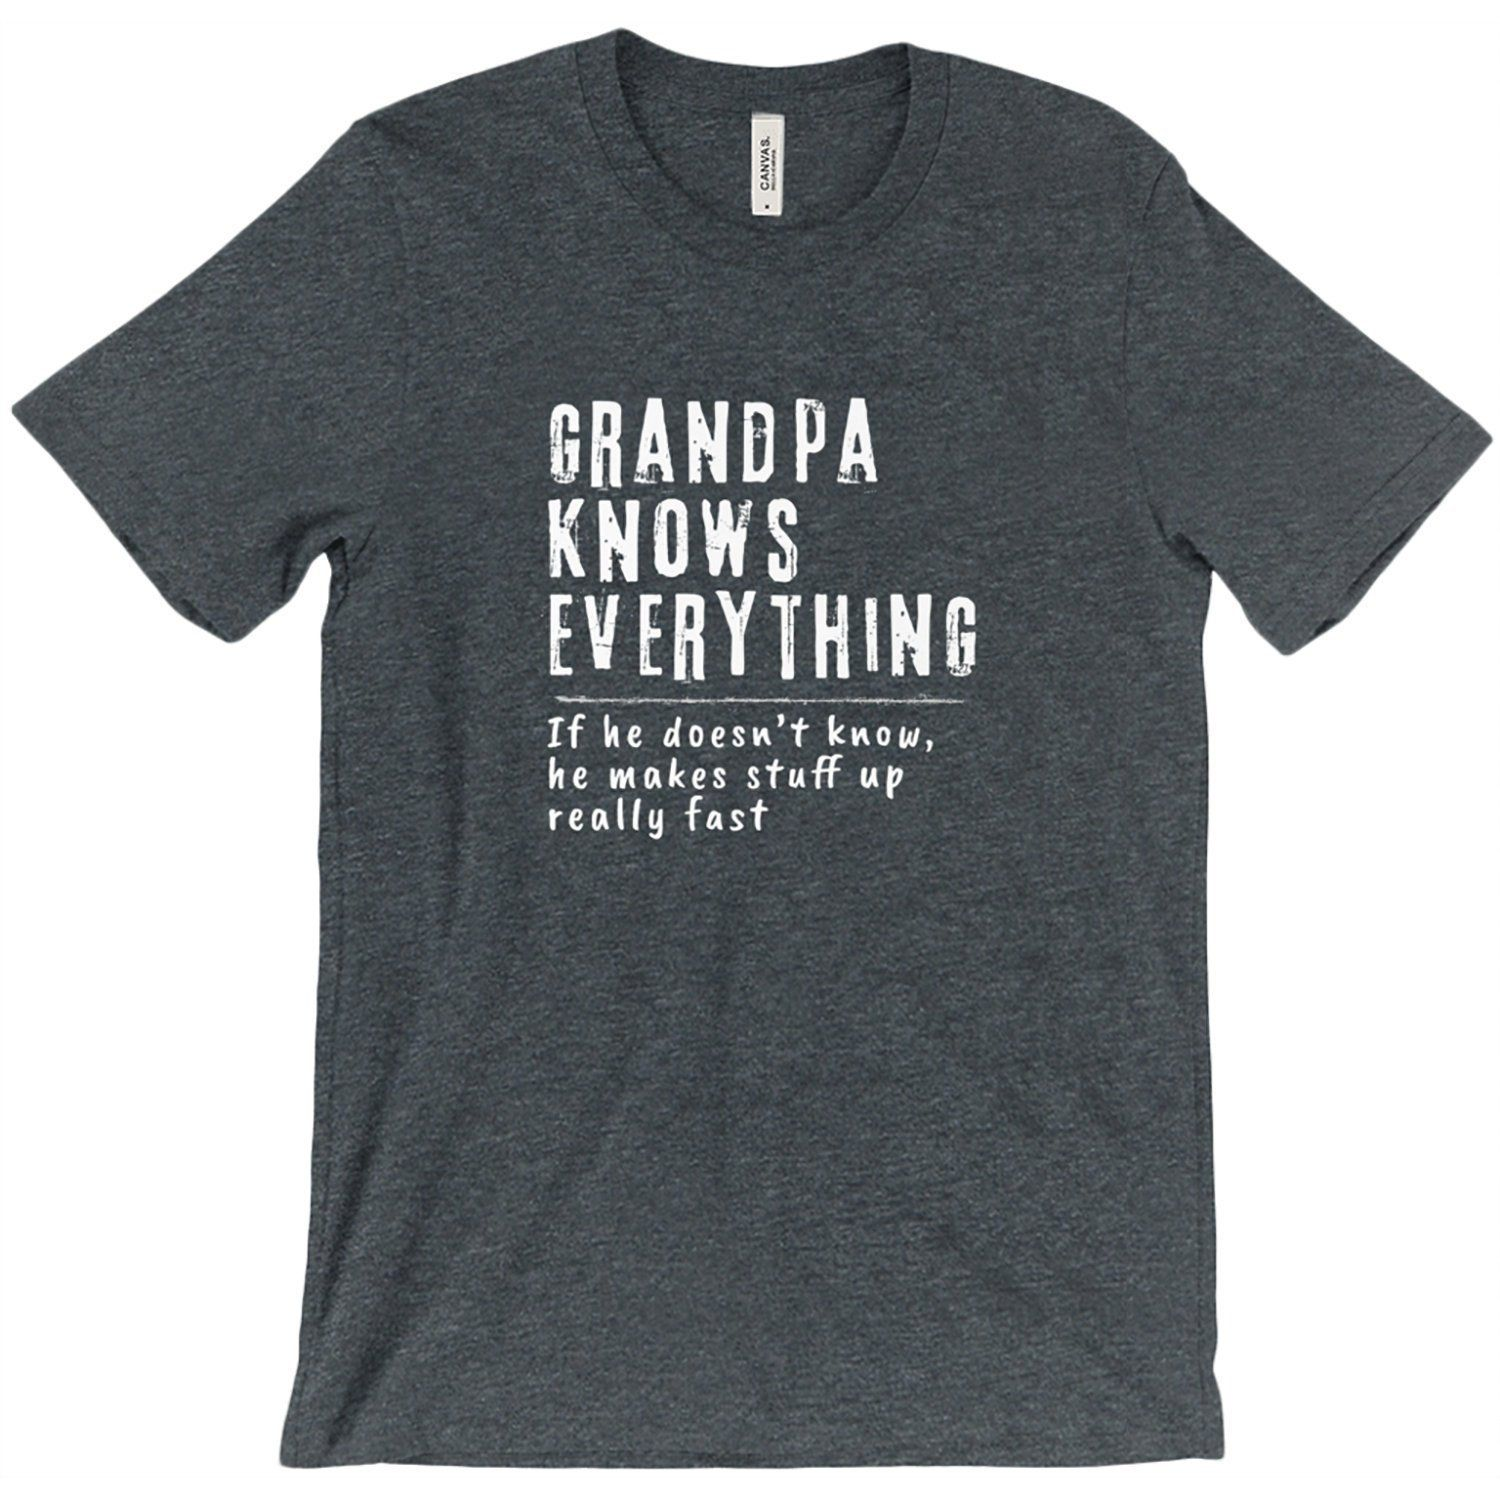 Personalized Grandpa Shirt for Papa, Gigi, Pop... Premium Grandpa TShirt, Funny Grandpa Gift Christmas Gift Birthday T-shirt #grandpagifts